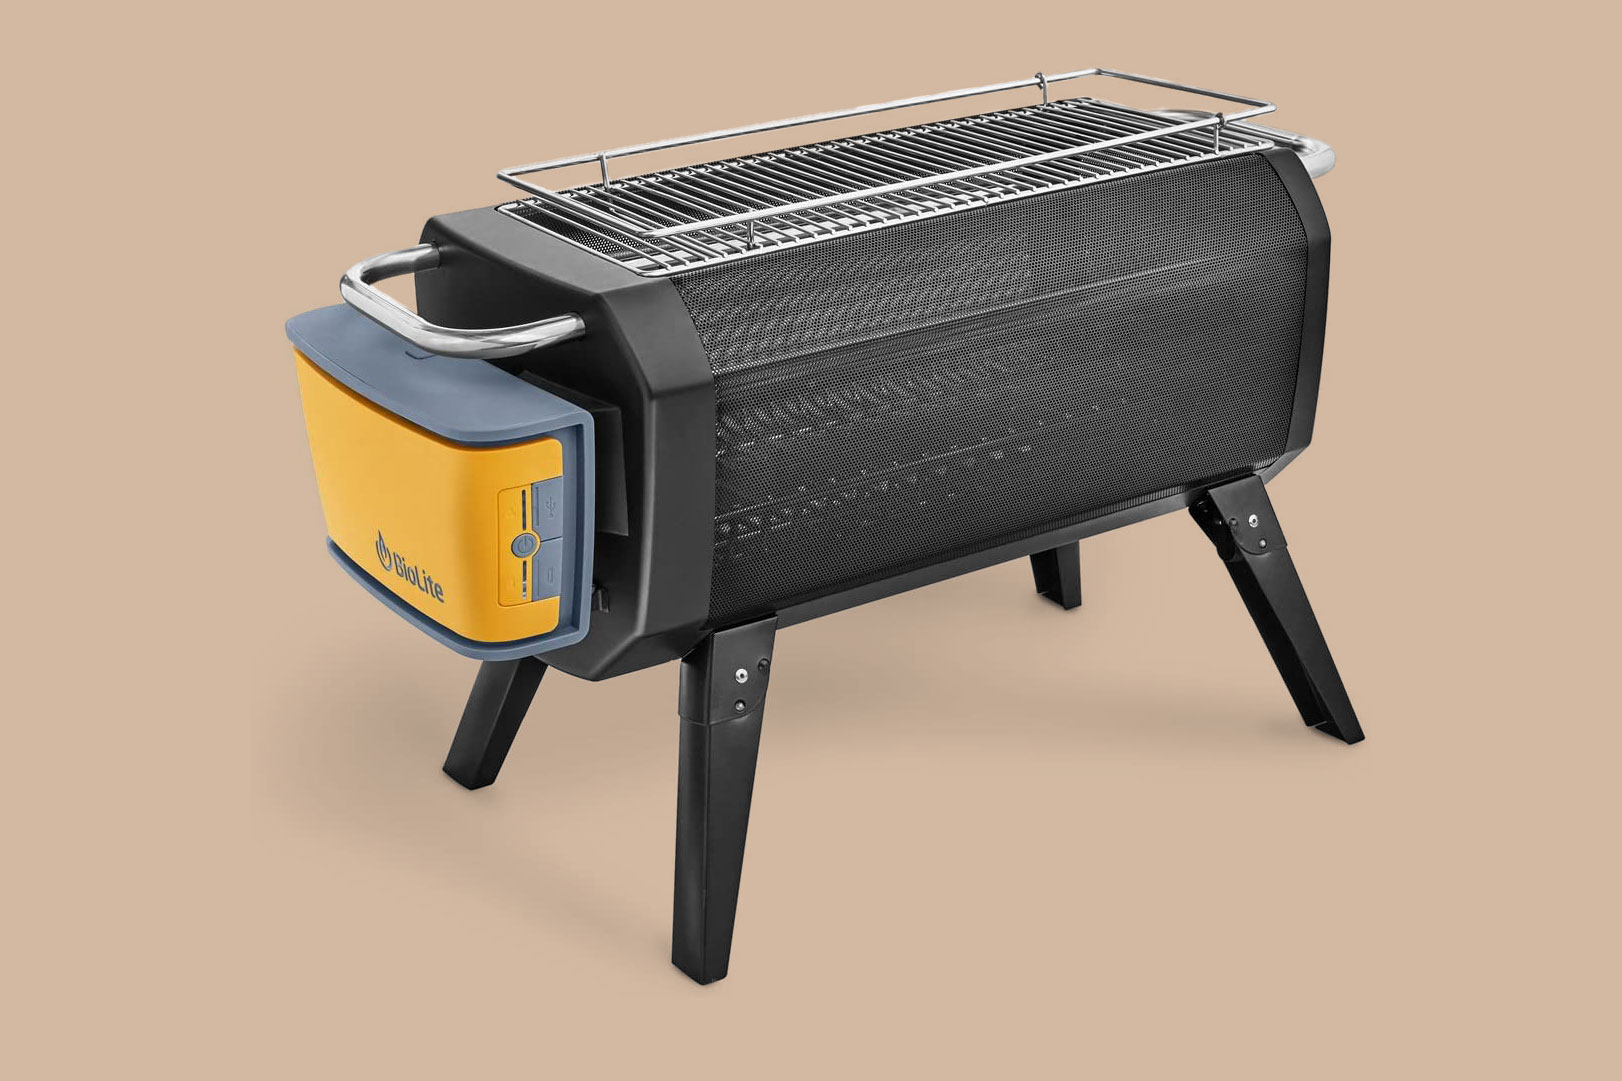 BioLite Outdoor Smokeless Wood and Charcoal Burning FirePit and Grill